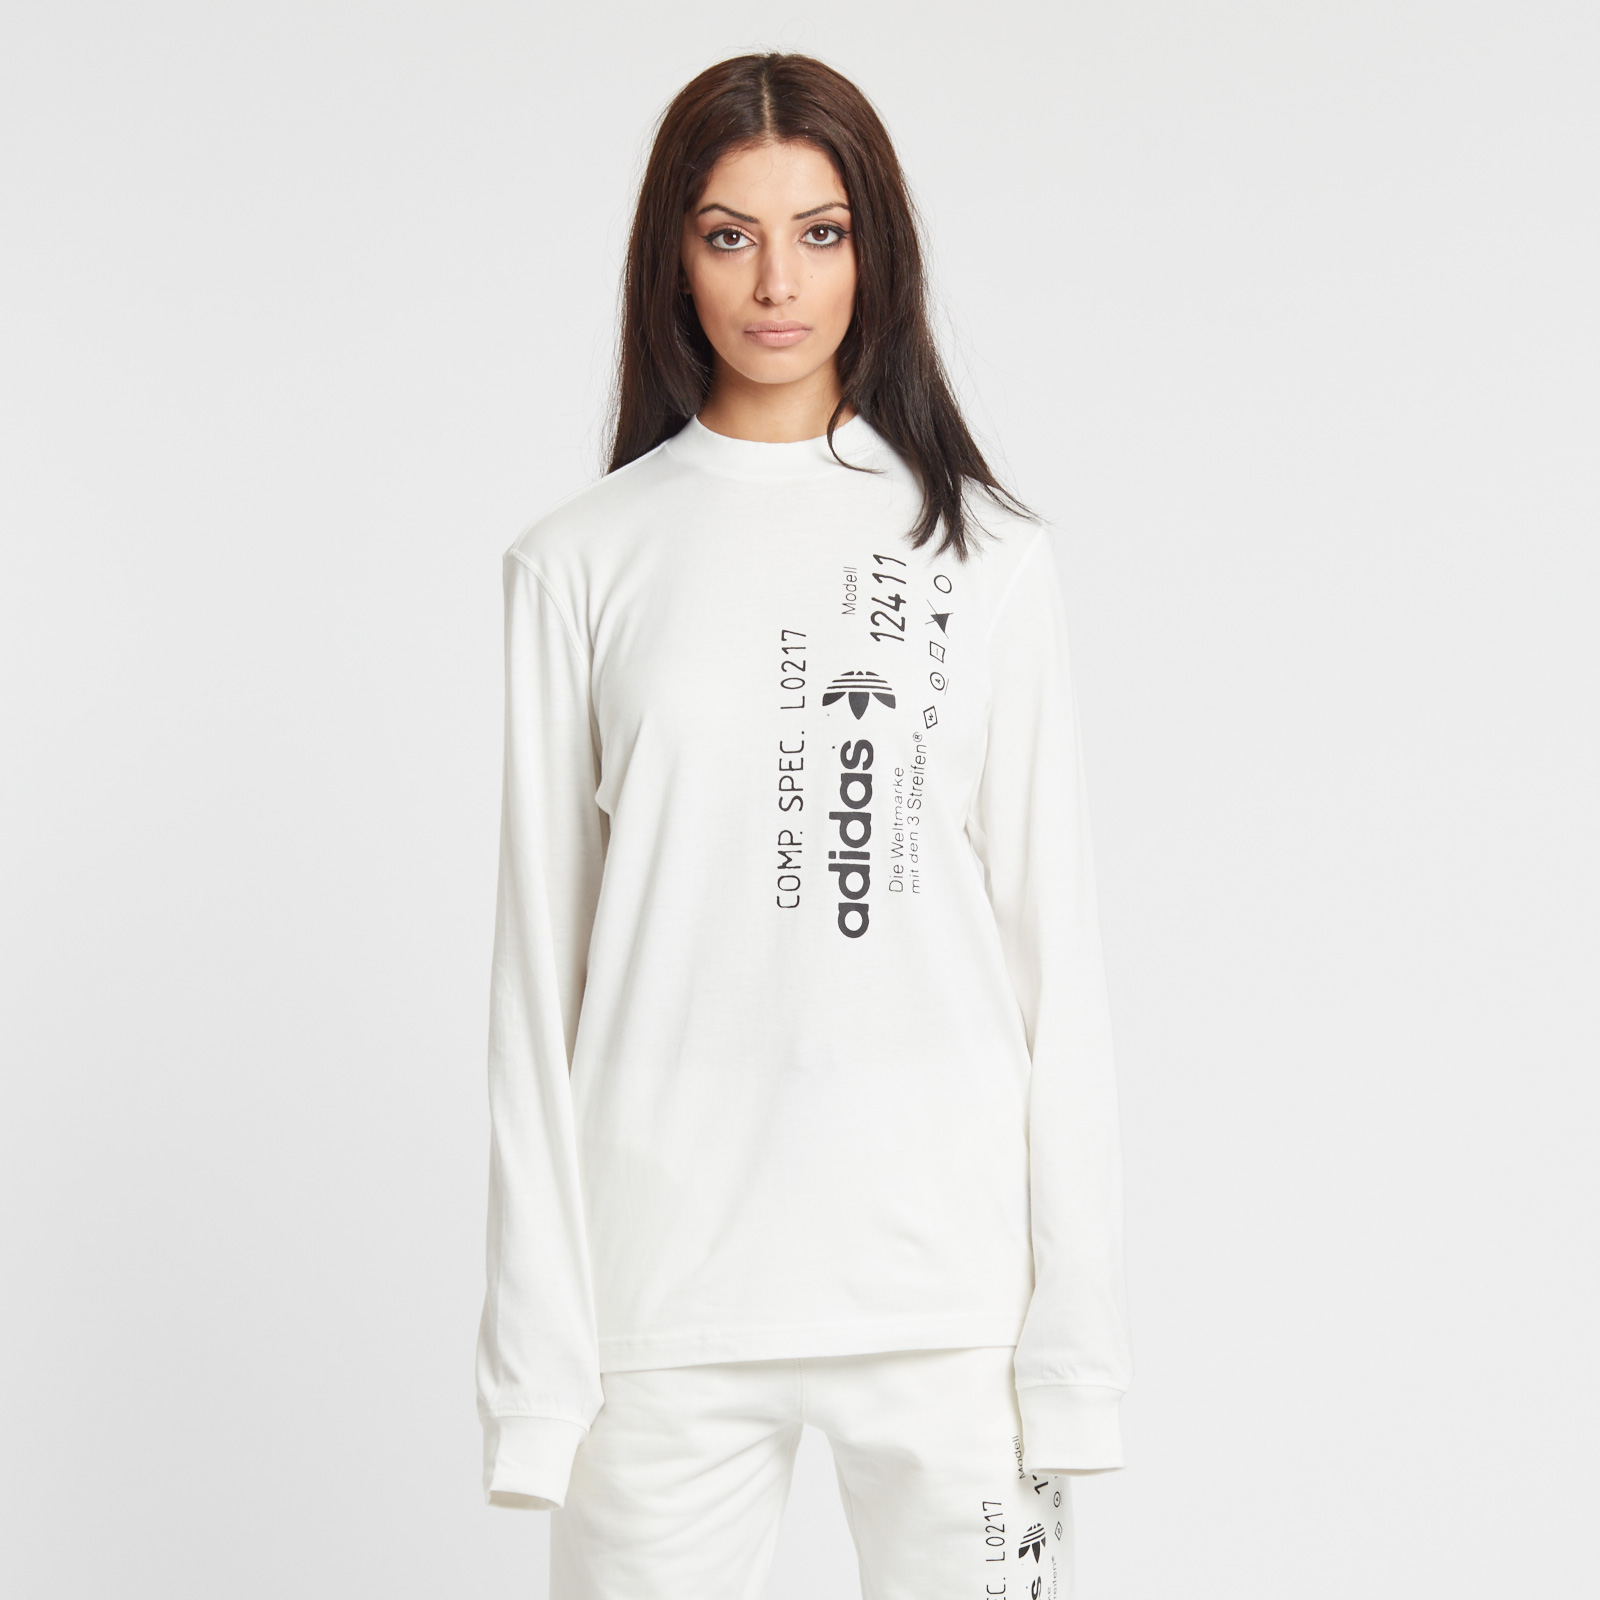 57a335510198 adidas Graphic Long Sleeve - Cg2010 - Sneakersnstuff | sneakers ...